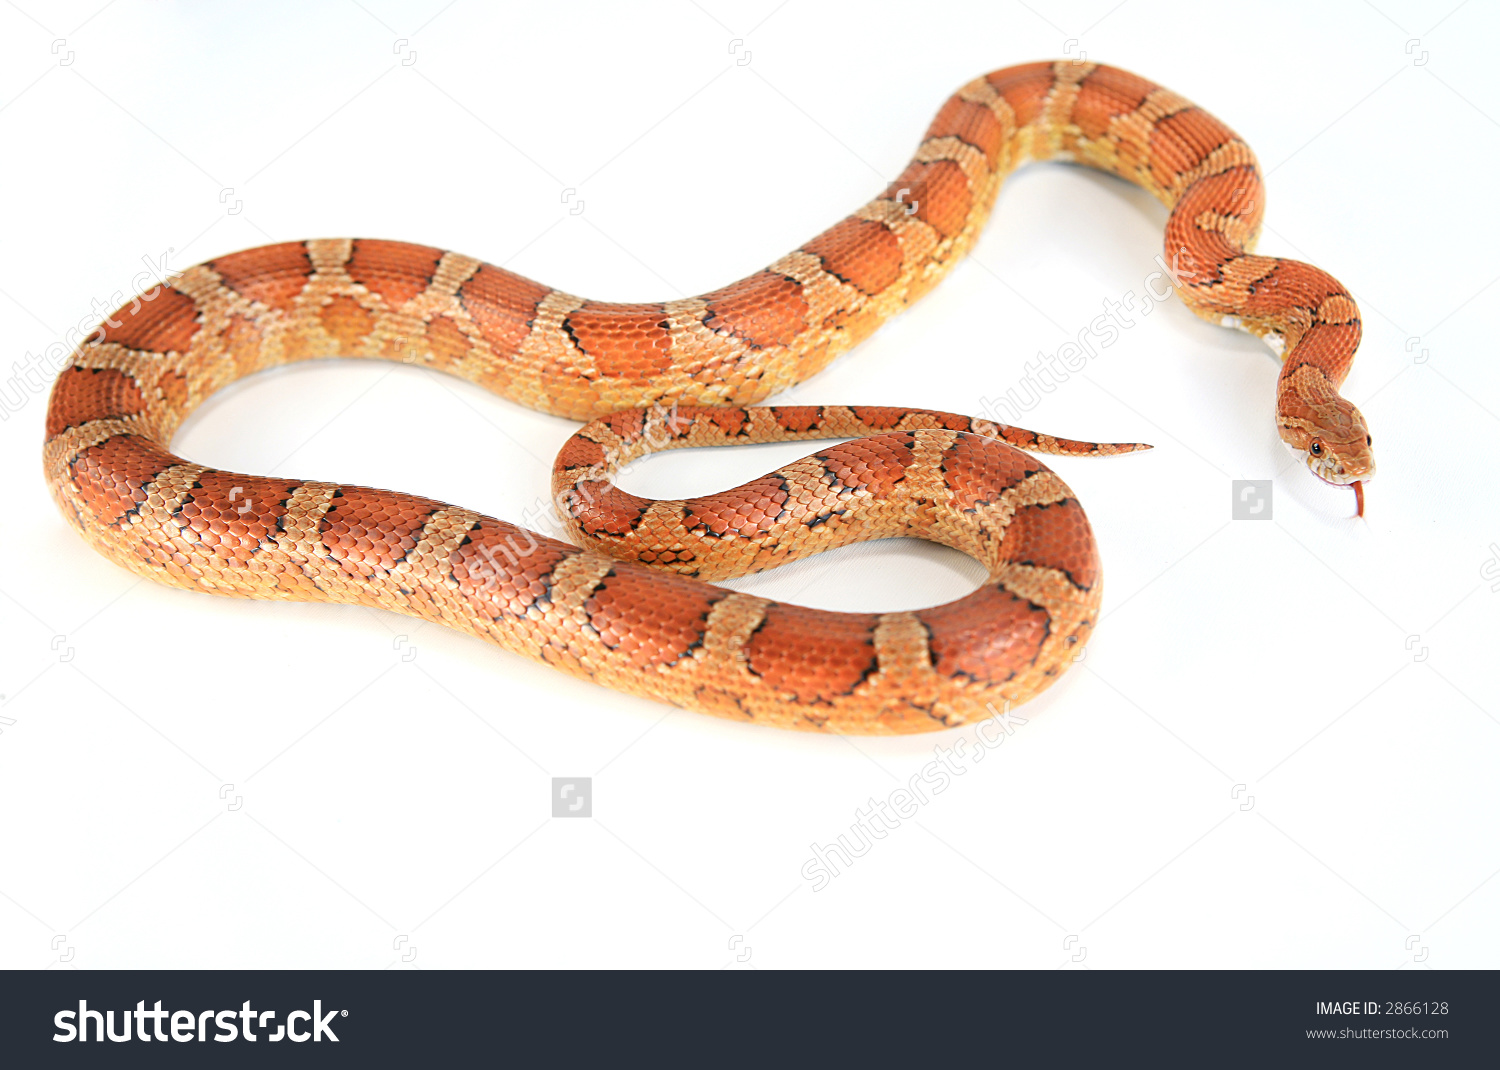 Corn Snake clipart #4, Download drawings